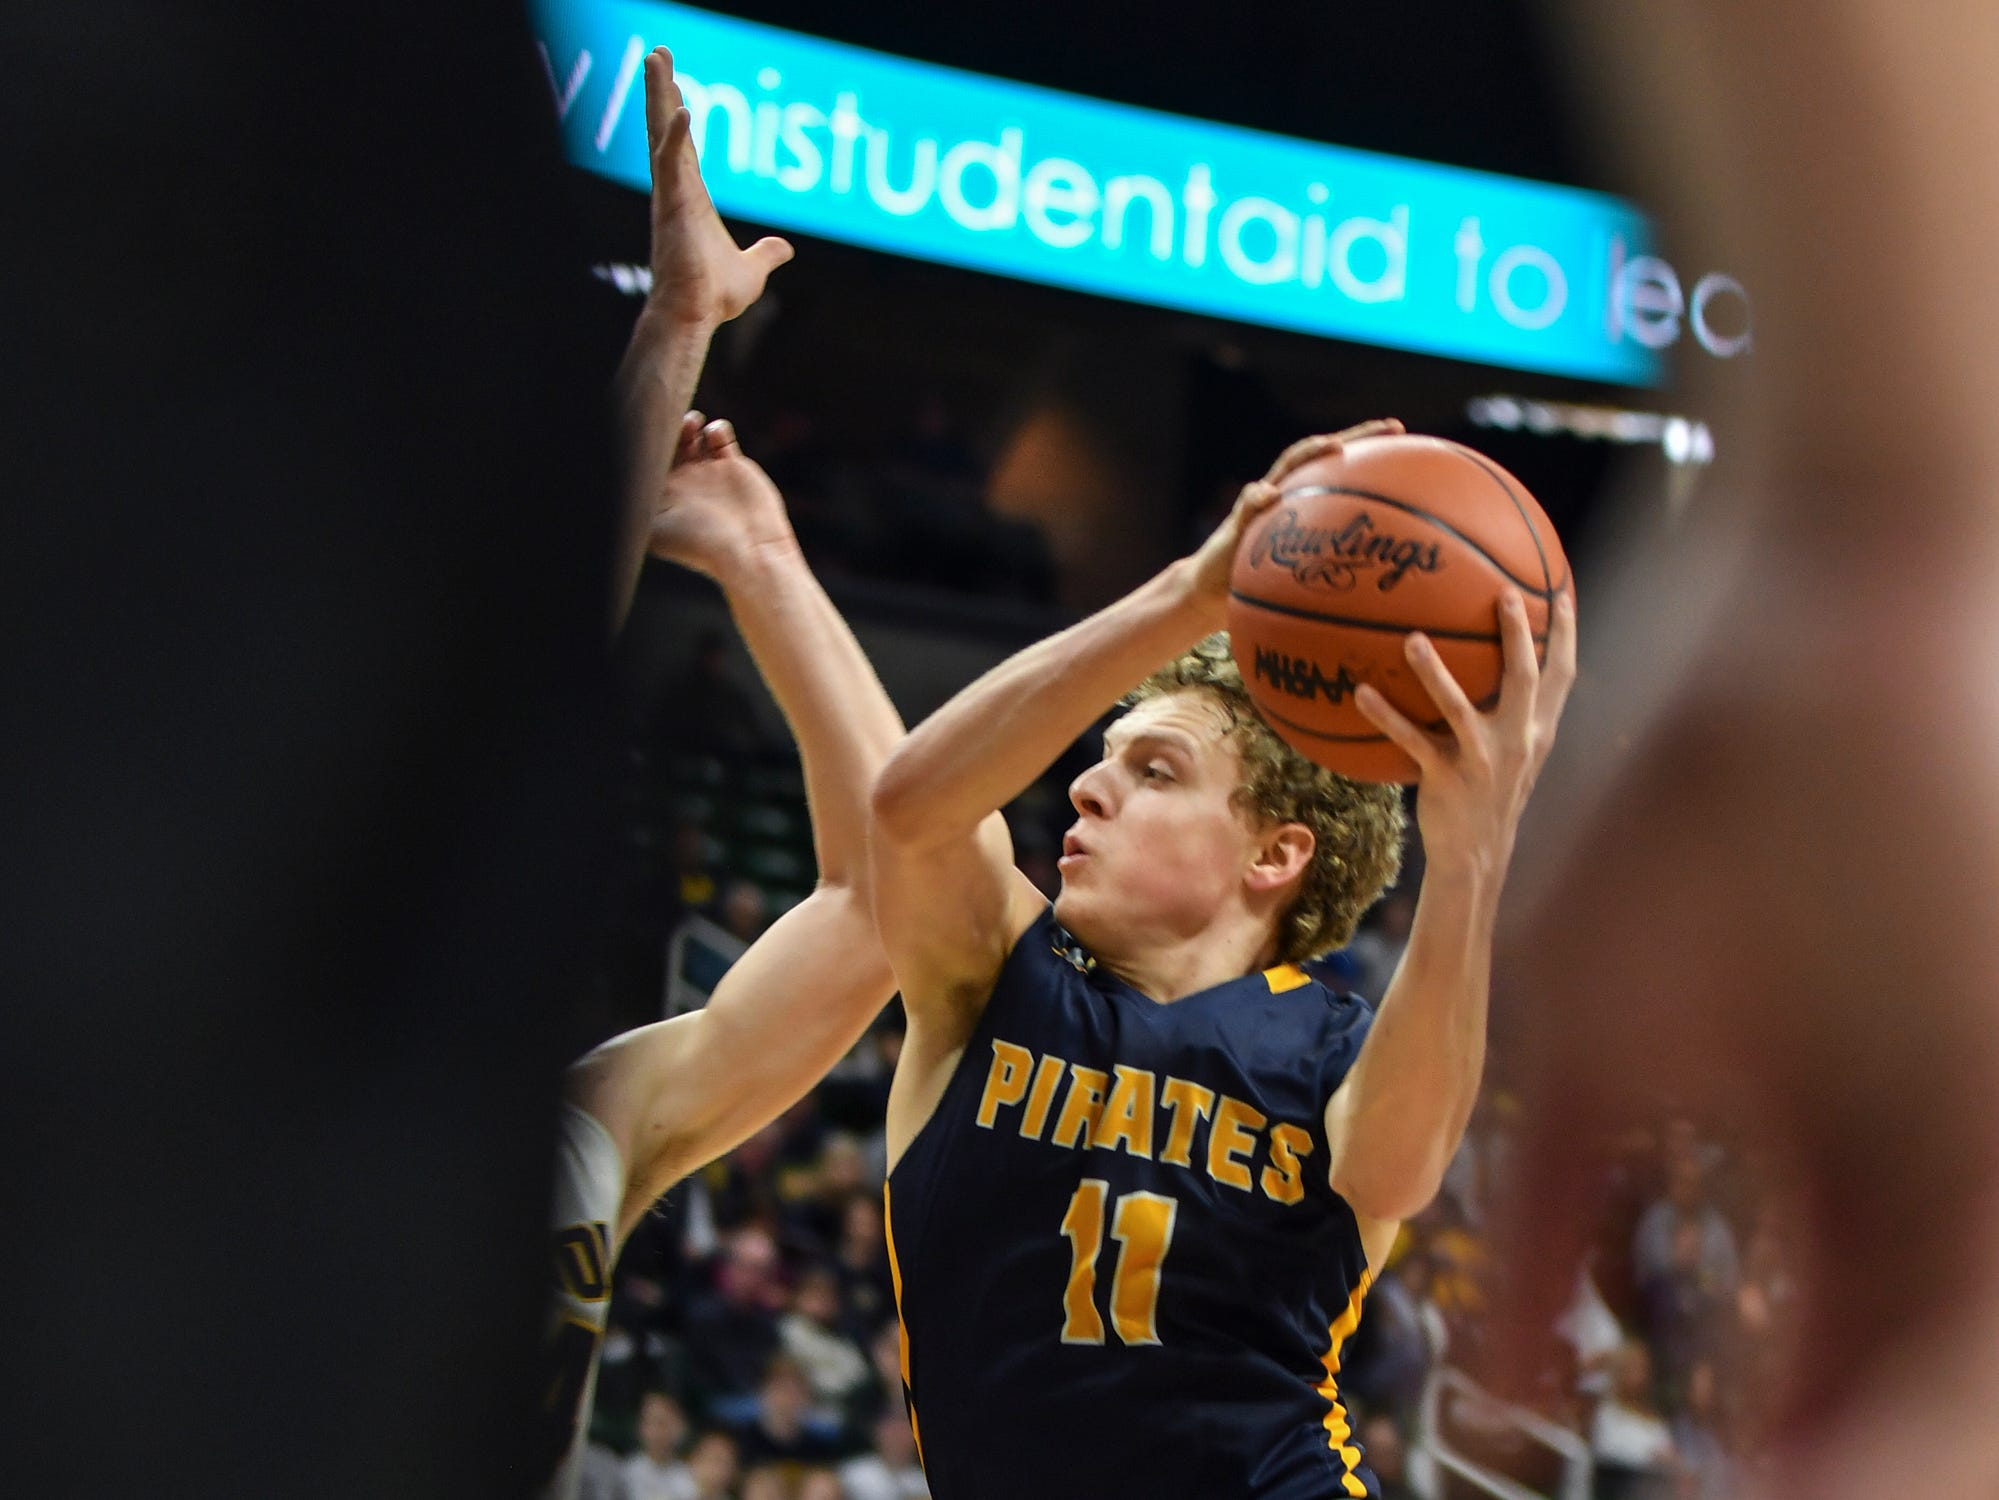 Collin Trierweiler of Pewamo-Westphalia drives into the paint against Erie-Mason, Thursday, March 14, 2019, during the MHSAA Div. 3 state semifinal at the Breslin Center in East Lansing.   P-W earned a berth in the state final winning 60-45.